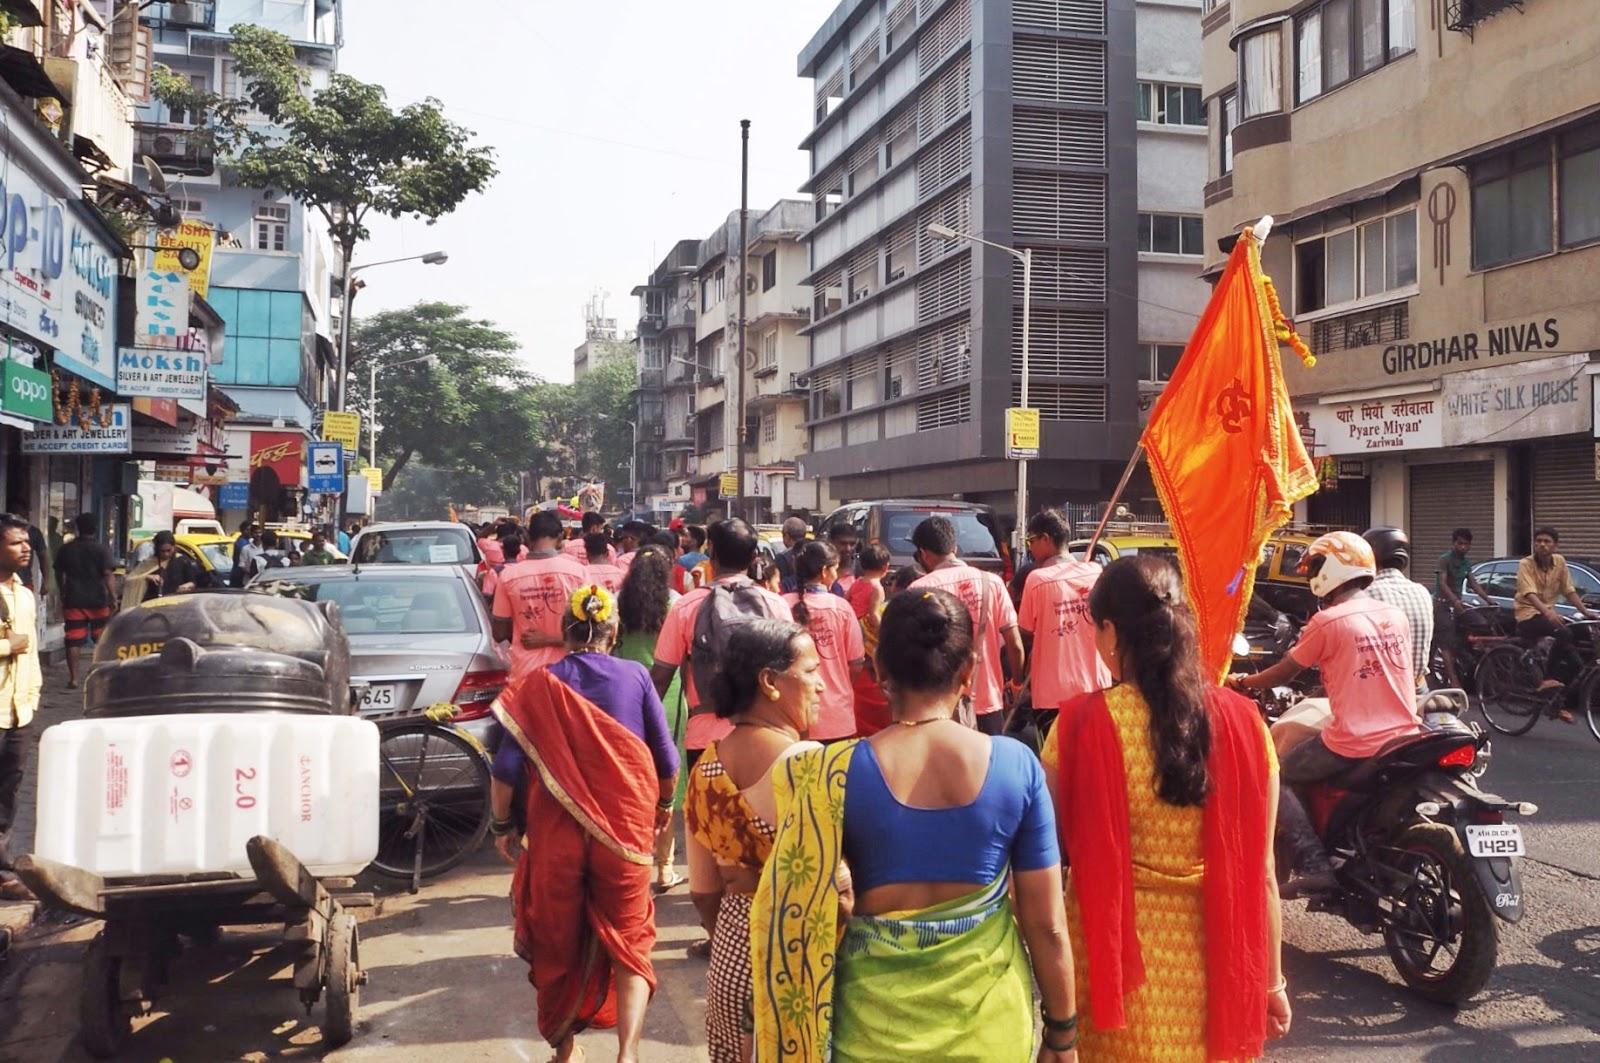 Procession, celebration, Mumbai, women in saris